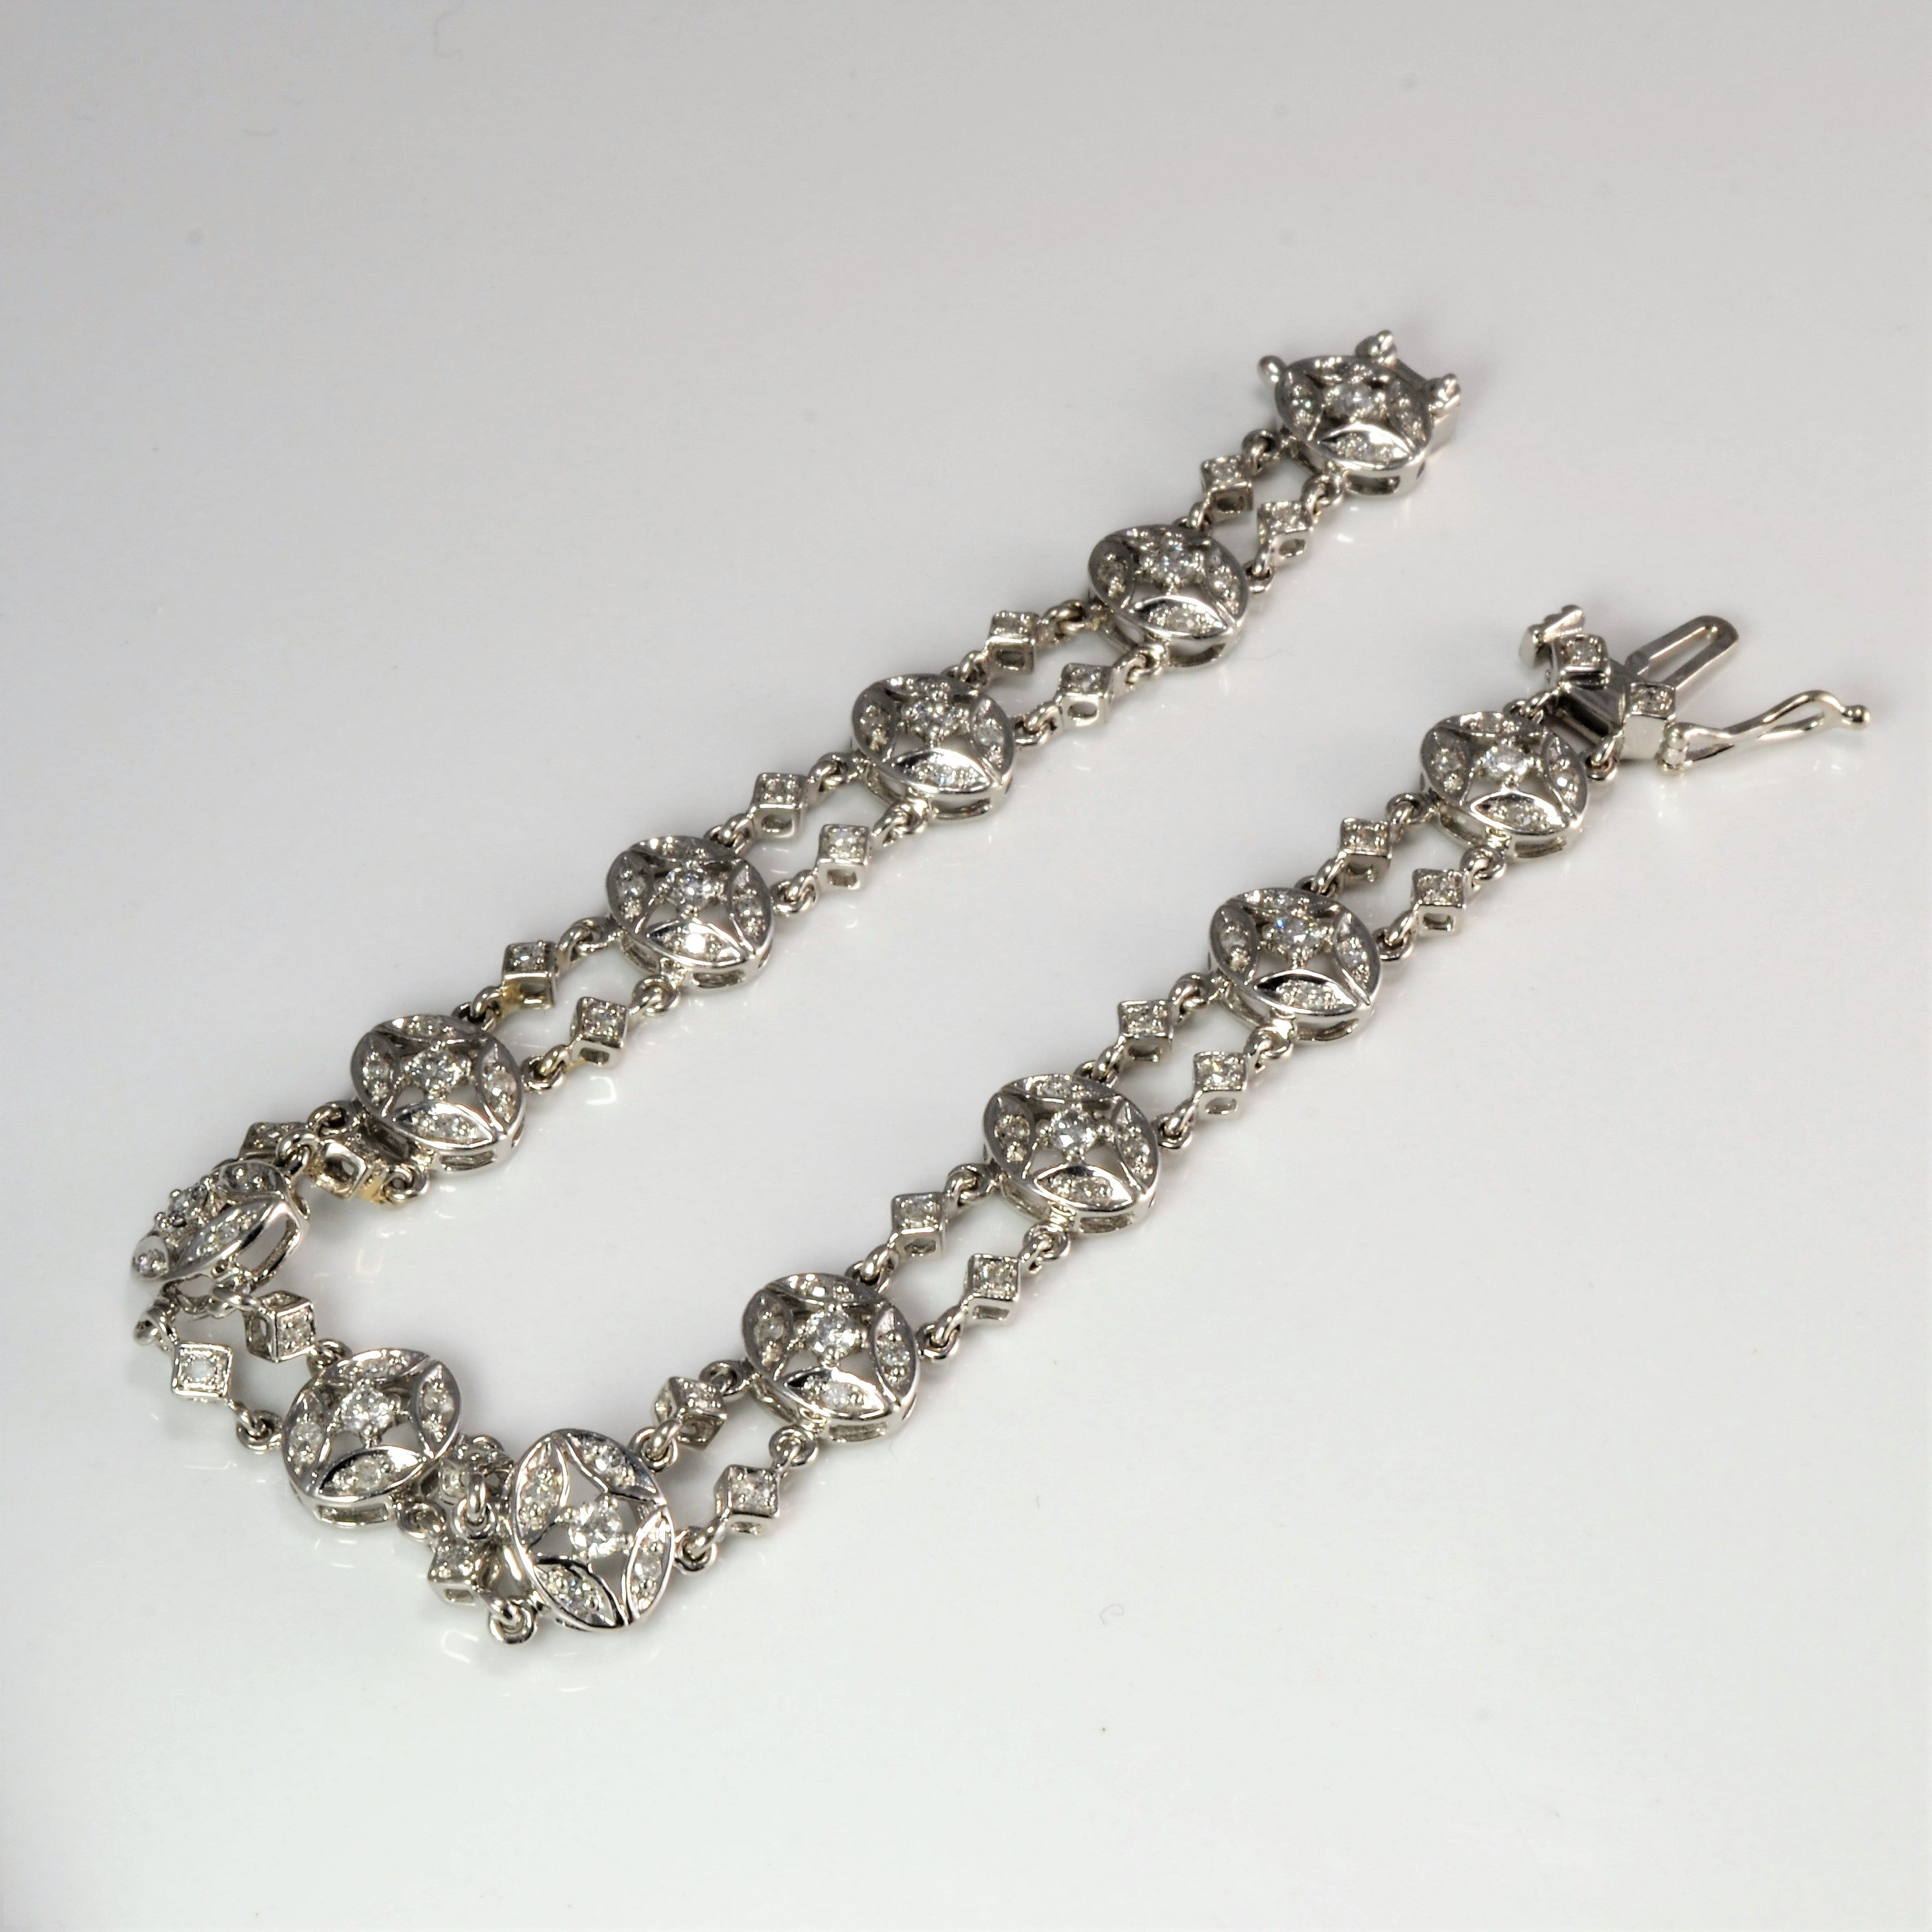 Filigree Diamond Chain Bracelet | 1.20 ctw, 7''|